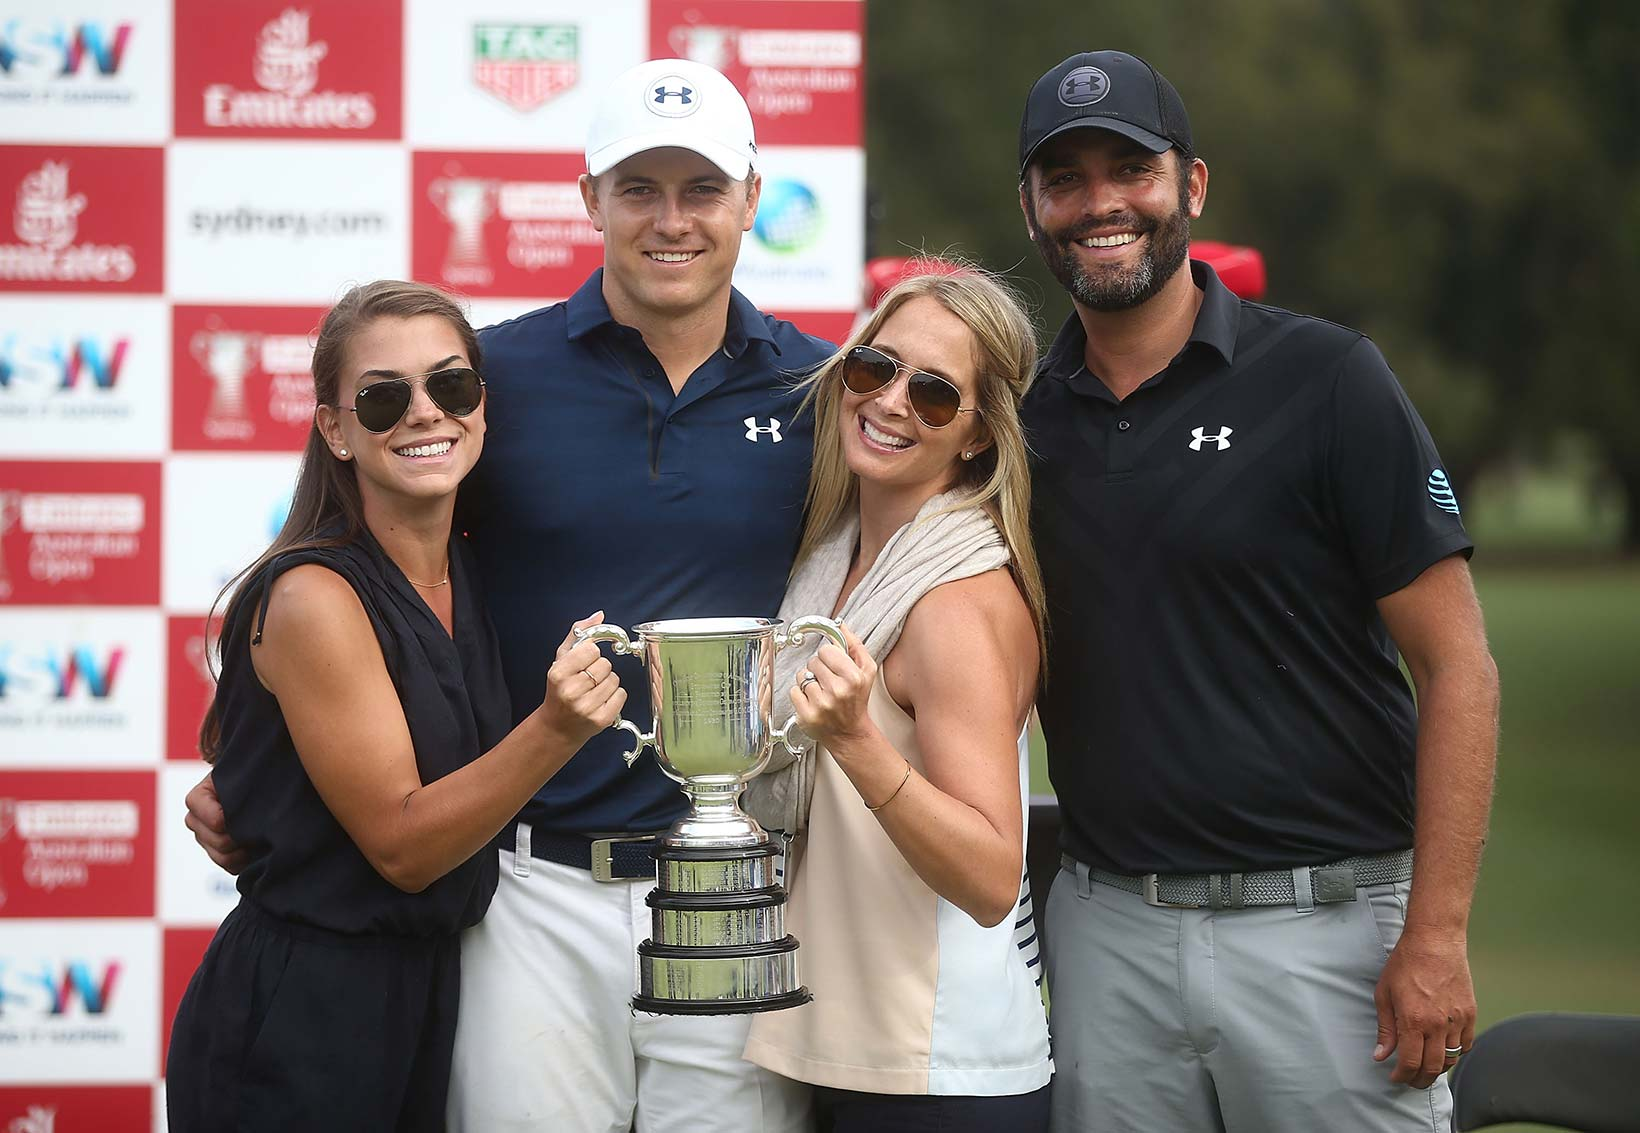 2016 Emirates Australian Open: Annie and Jordan Pose with Michael Greller and His Wife Ellie